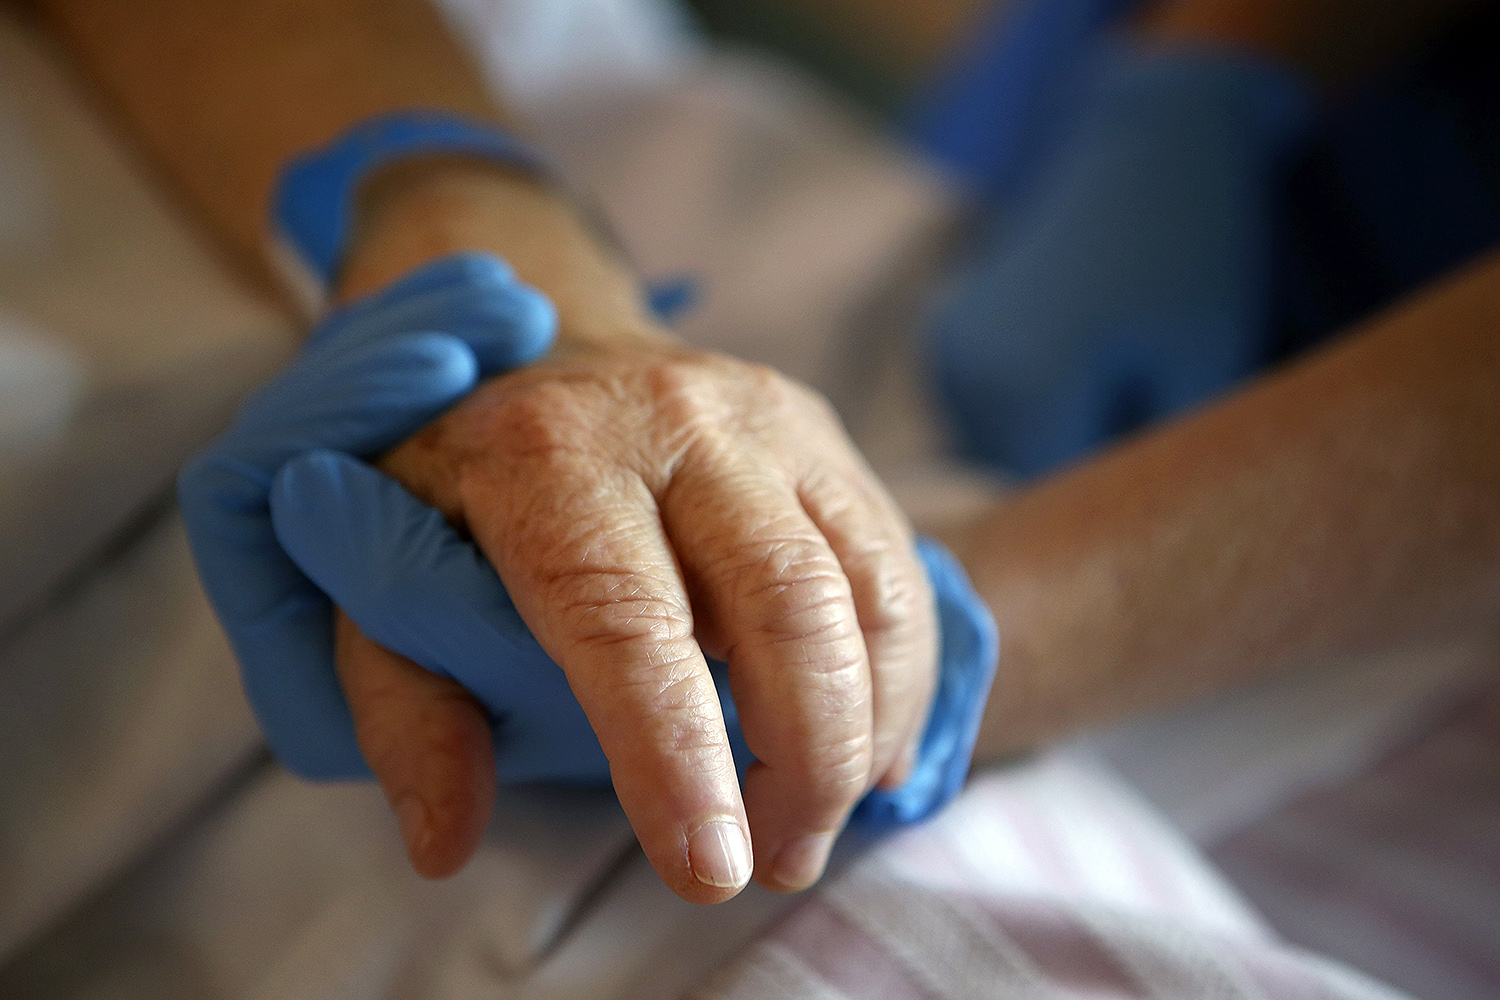 A nurse holds the hand of a patient in the palliative care unit of Eugenie Hospital in Ajaccio, on the French Mediterranean island of Corsica, on April 23. PASCAL POCHARD-CASABIANCA/AFP via Getty Images